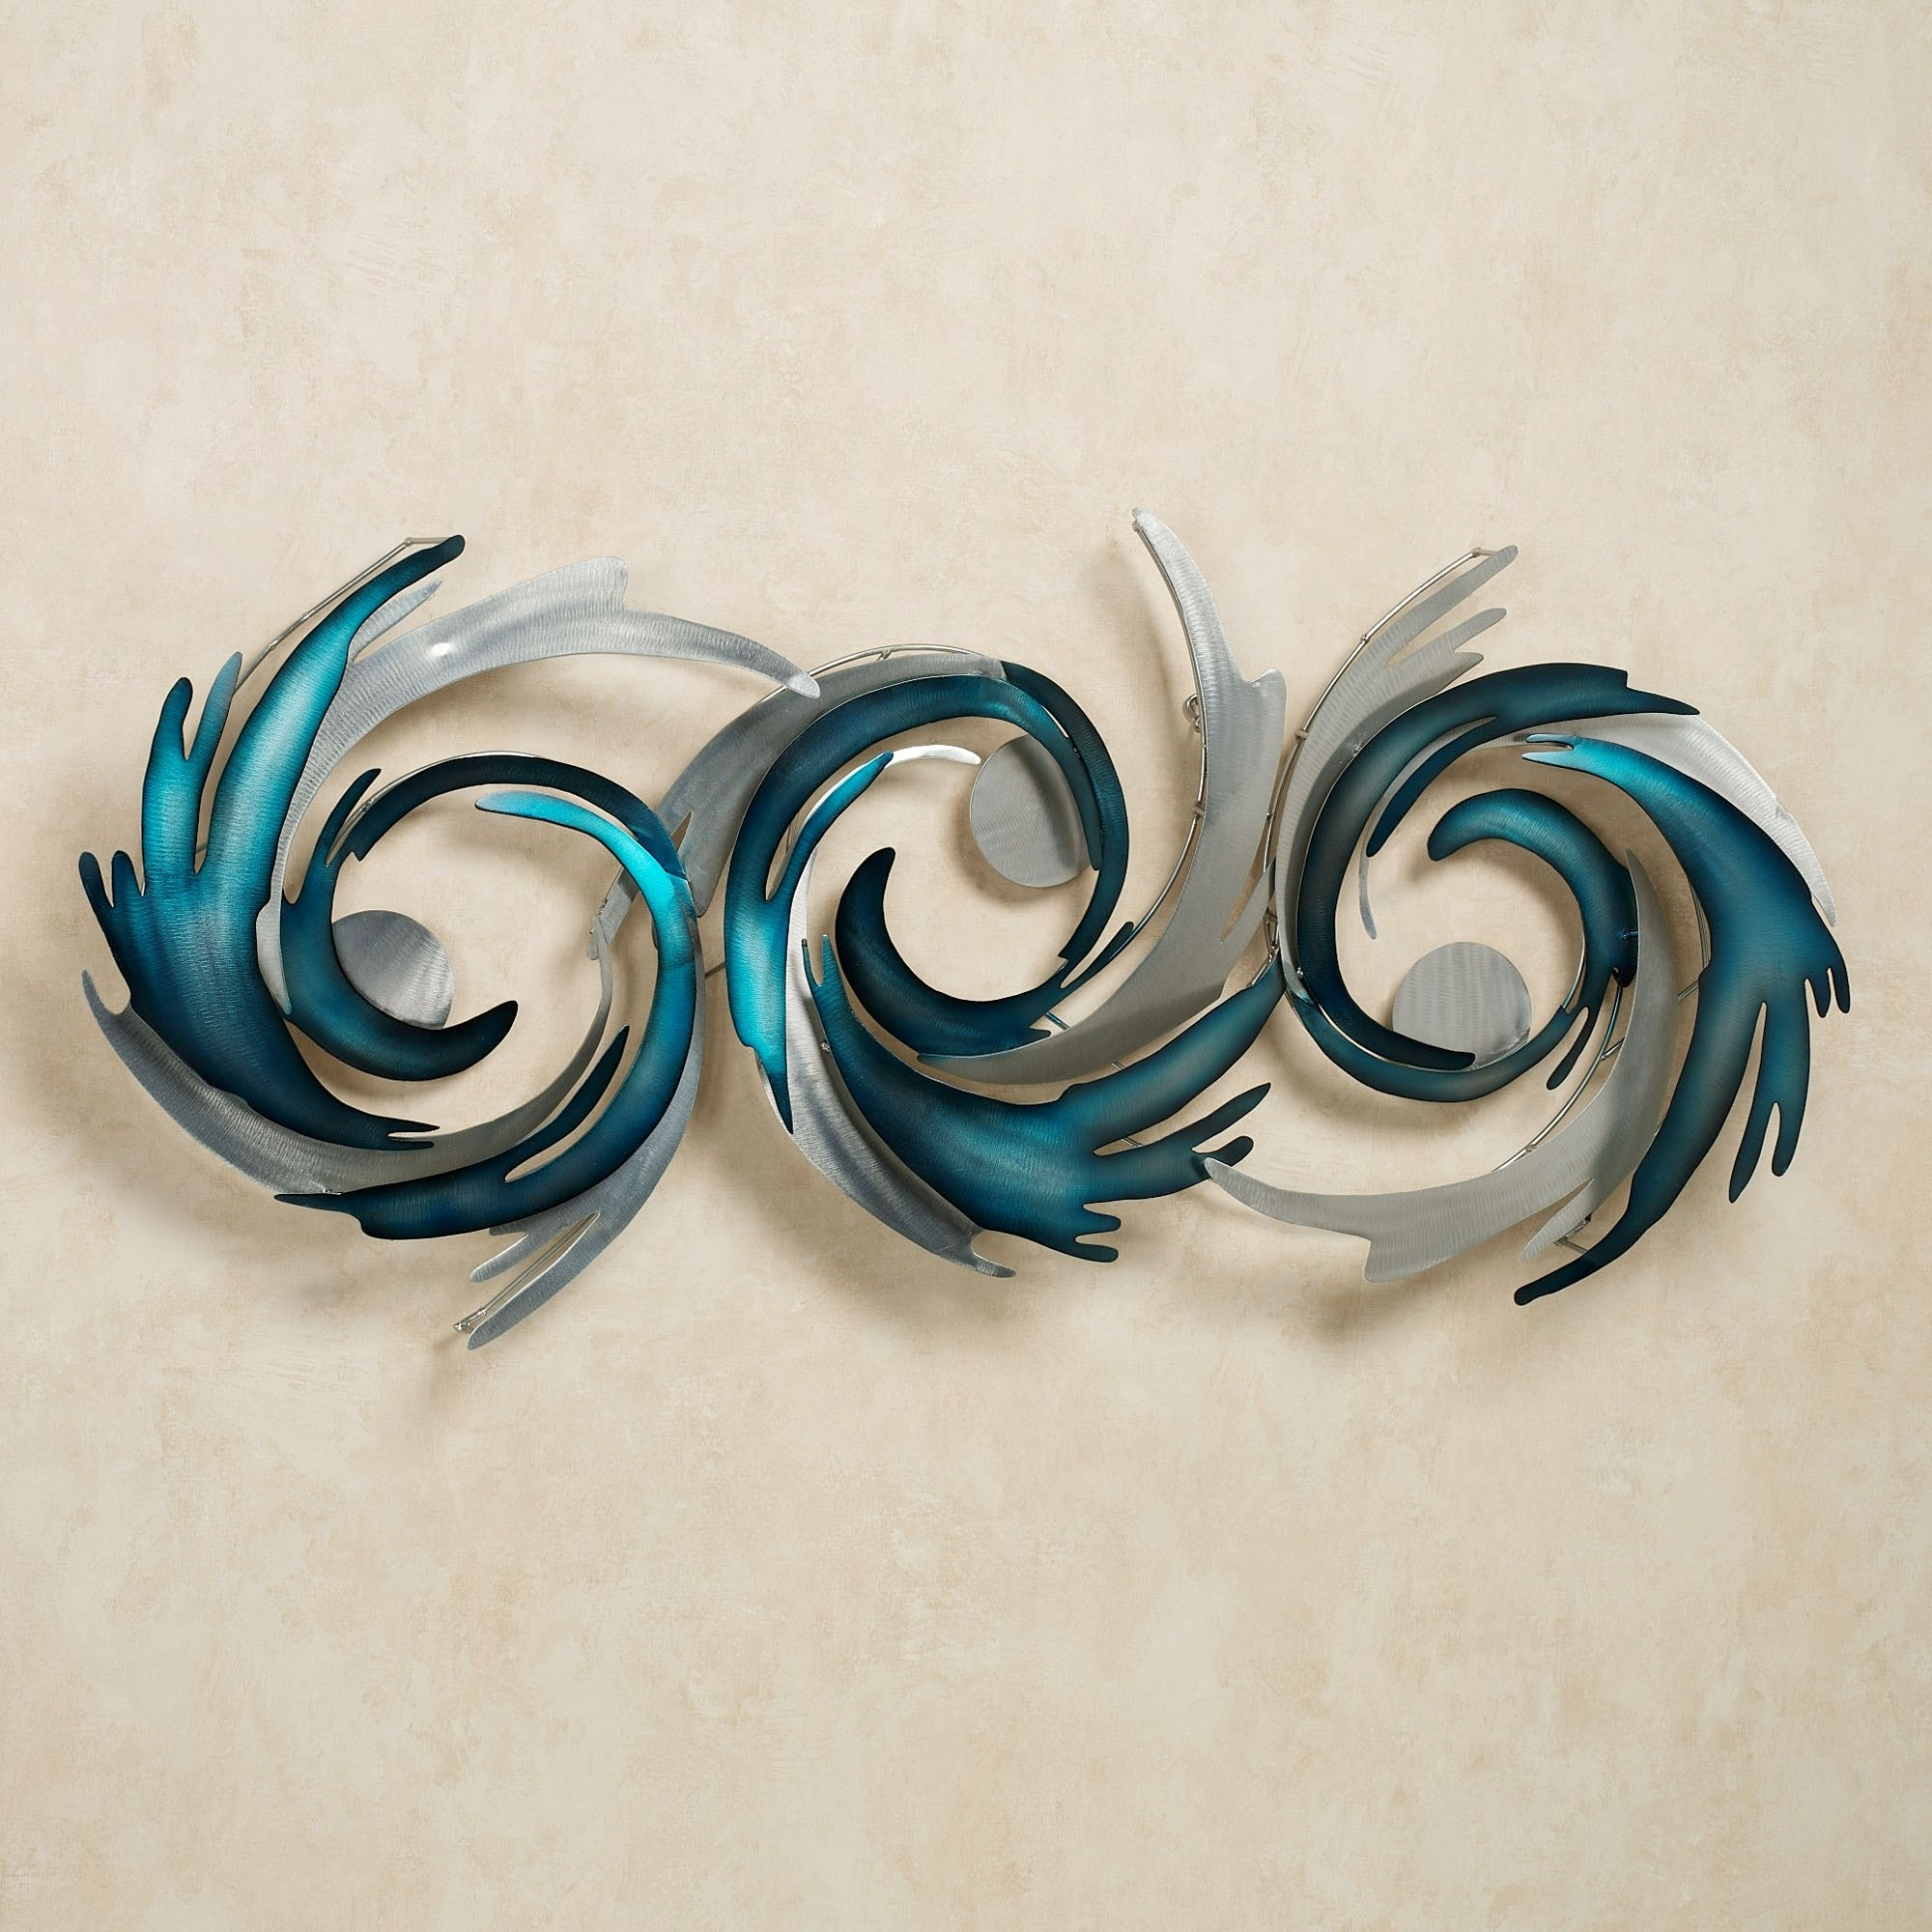 Perfect Storm Metal Wall Sculpturejasonw Studios | Metal Wall Intended For 2017 Circle Bubble Wave Shaped Metal Abstract Wall Art (View 18 of 20)